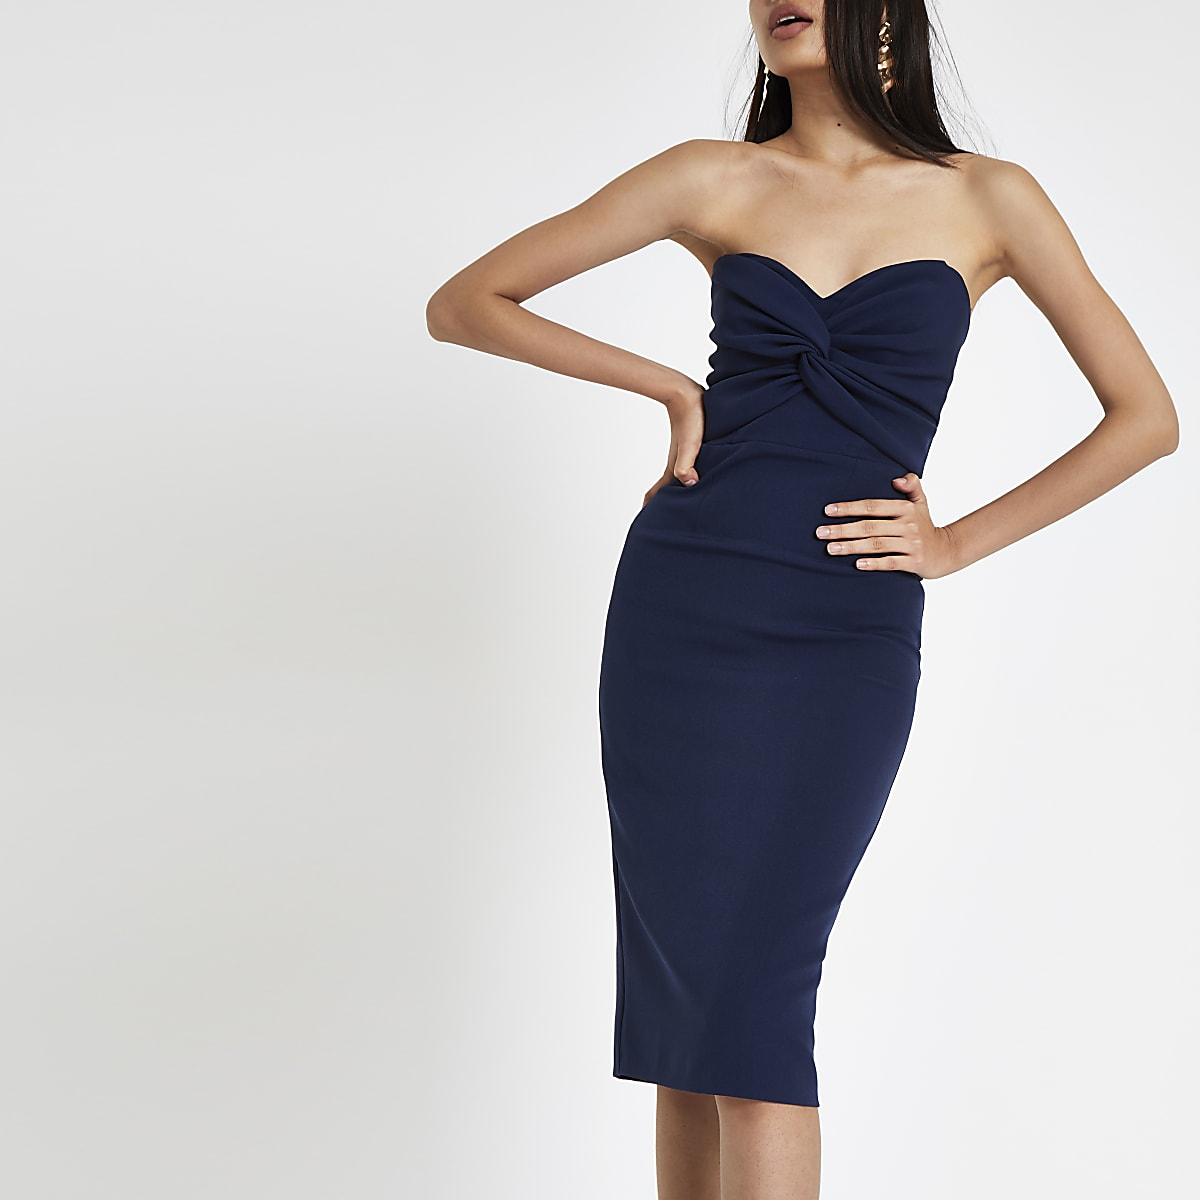 91a149bbb259 Navy twist front bandeau maxi bodycon dress - Bodycon Dresses - Dresses -  women